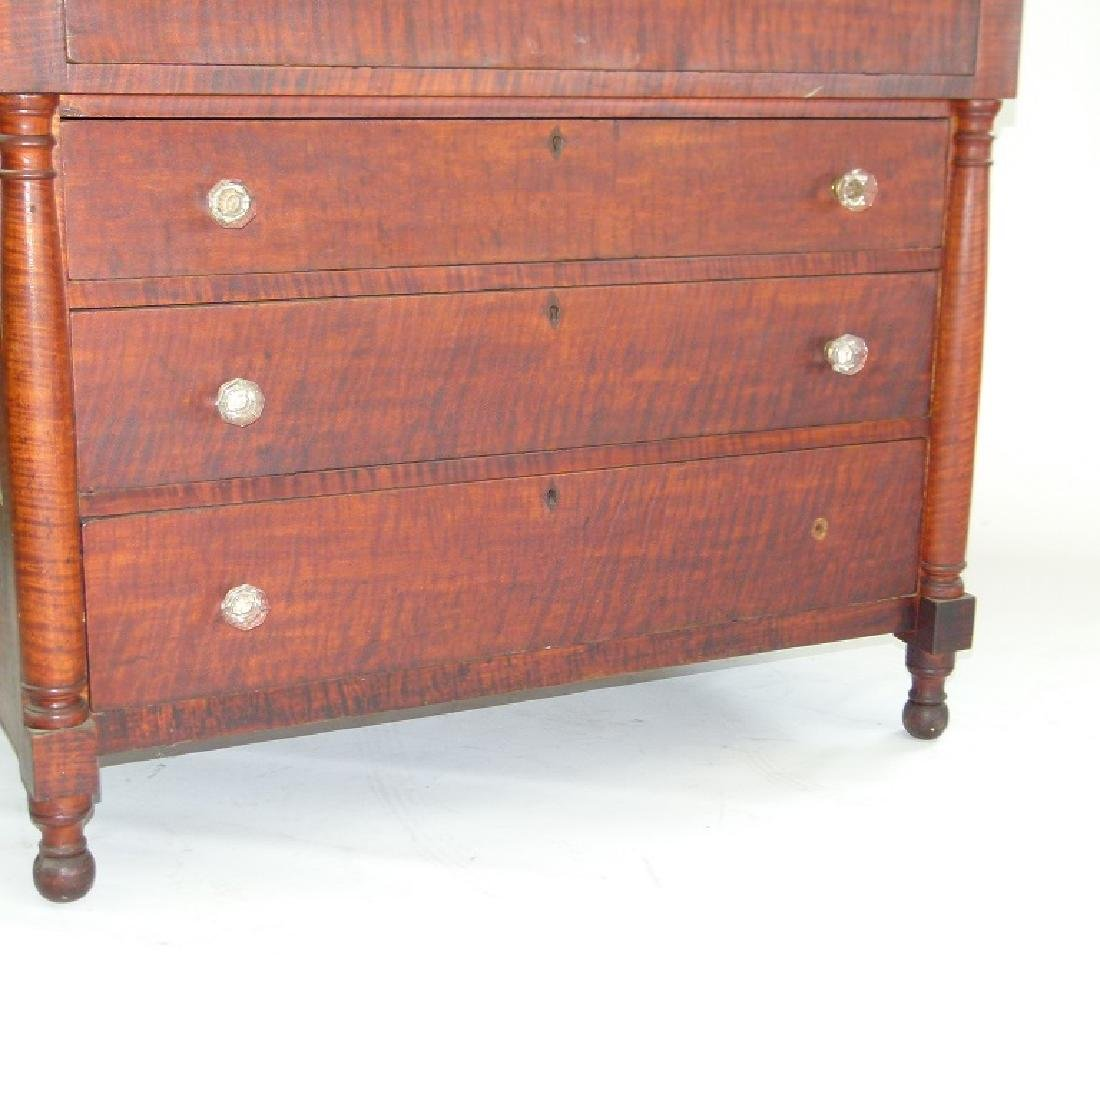 SHERATON CARVED TIGER MAPLE 2/4 CHEST OF DRAWERS - 3